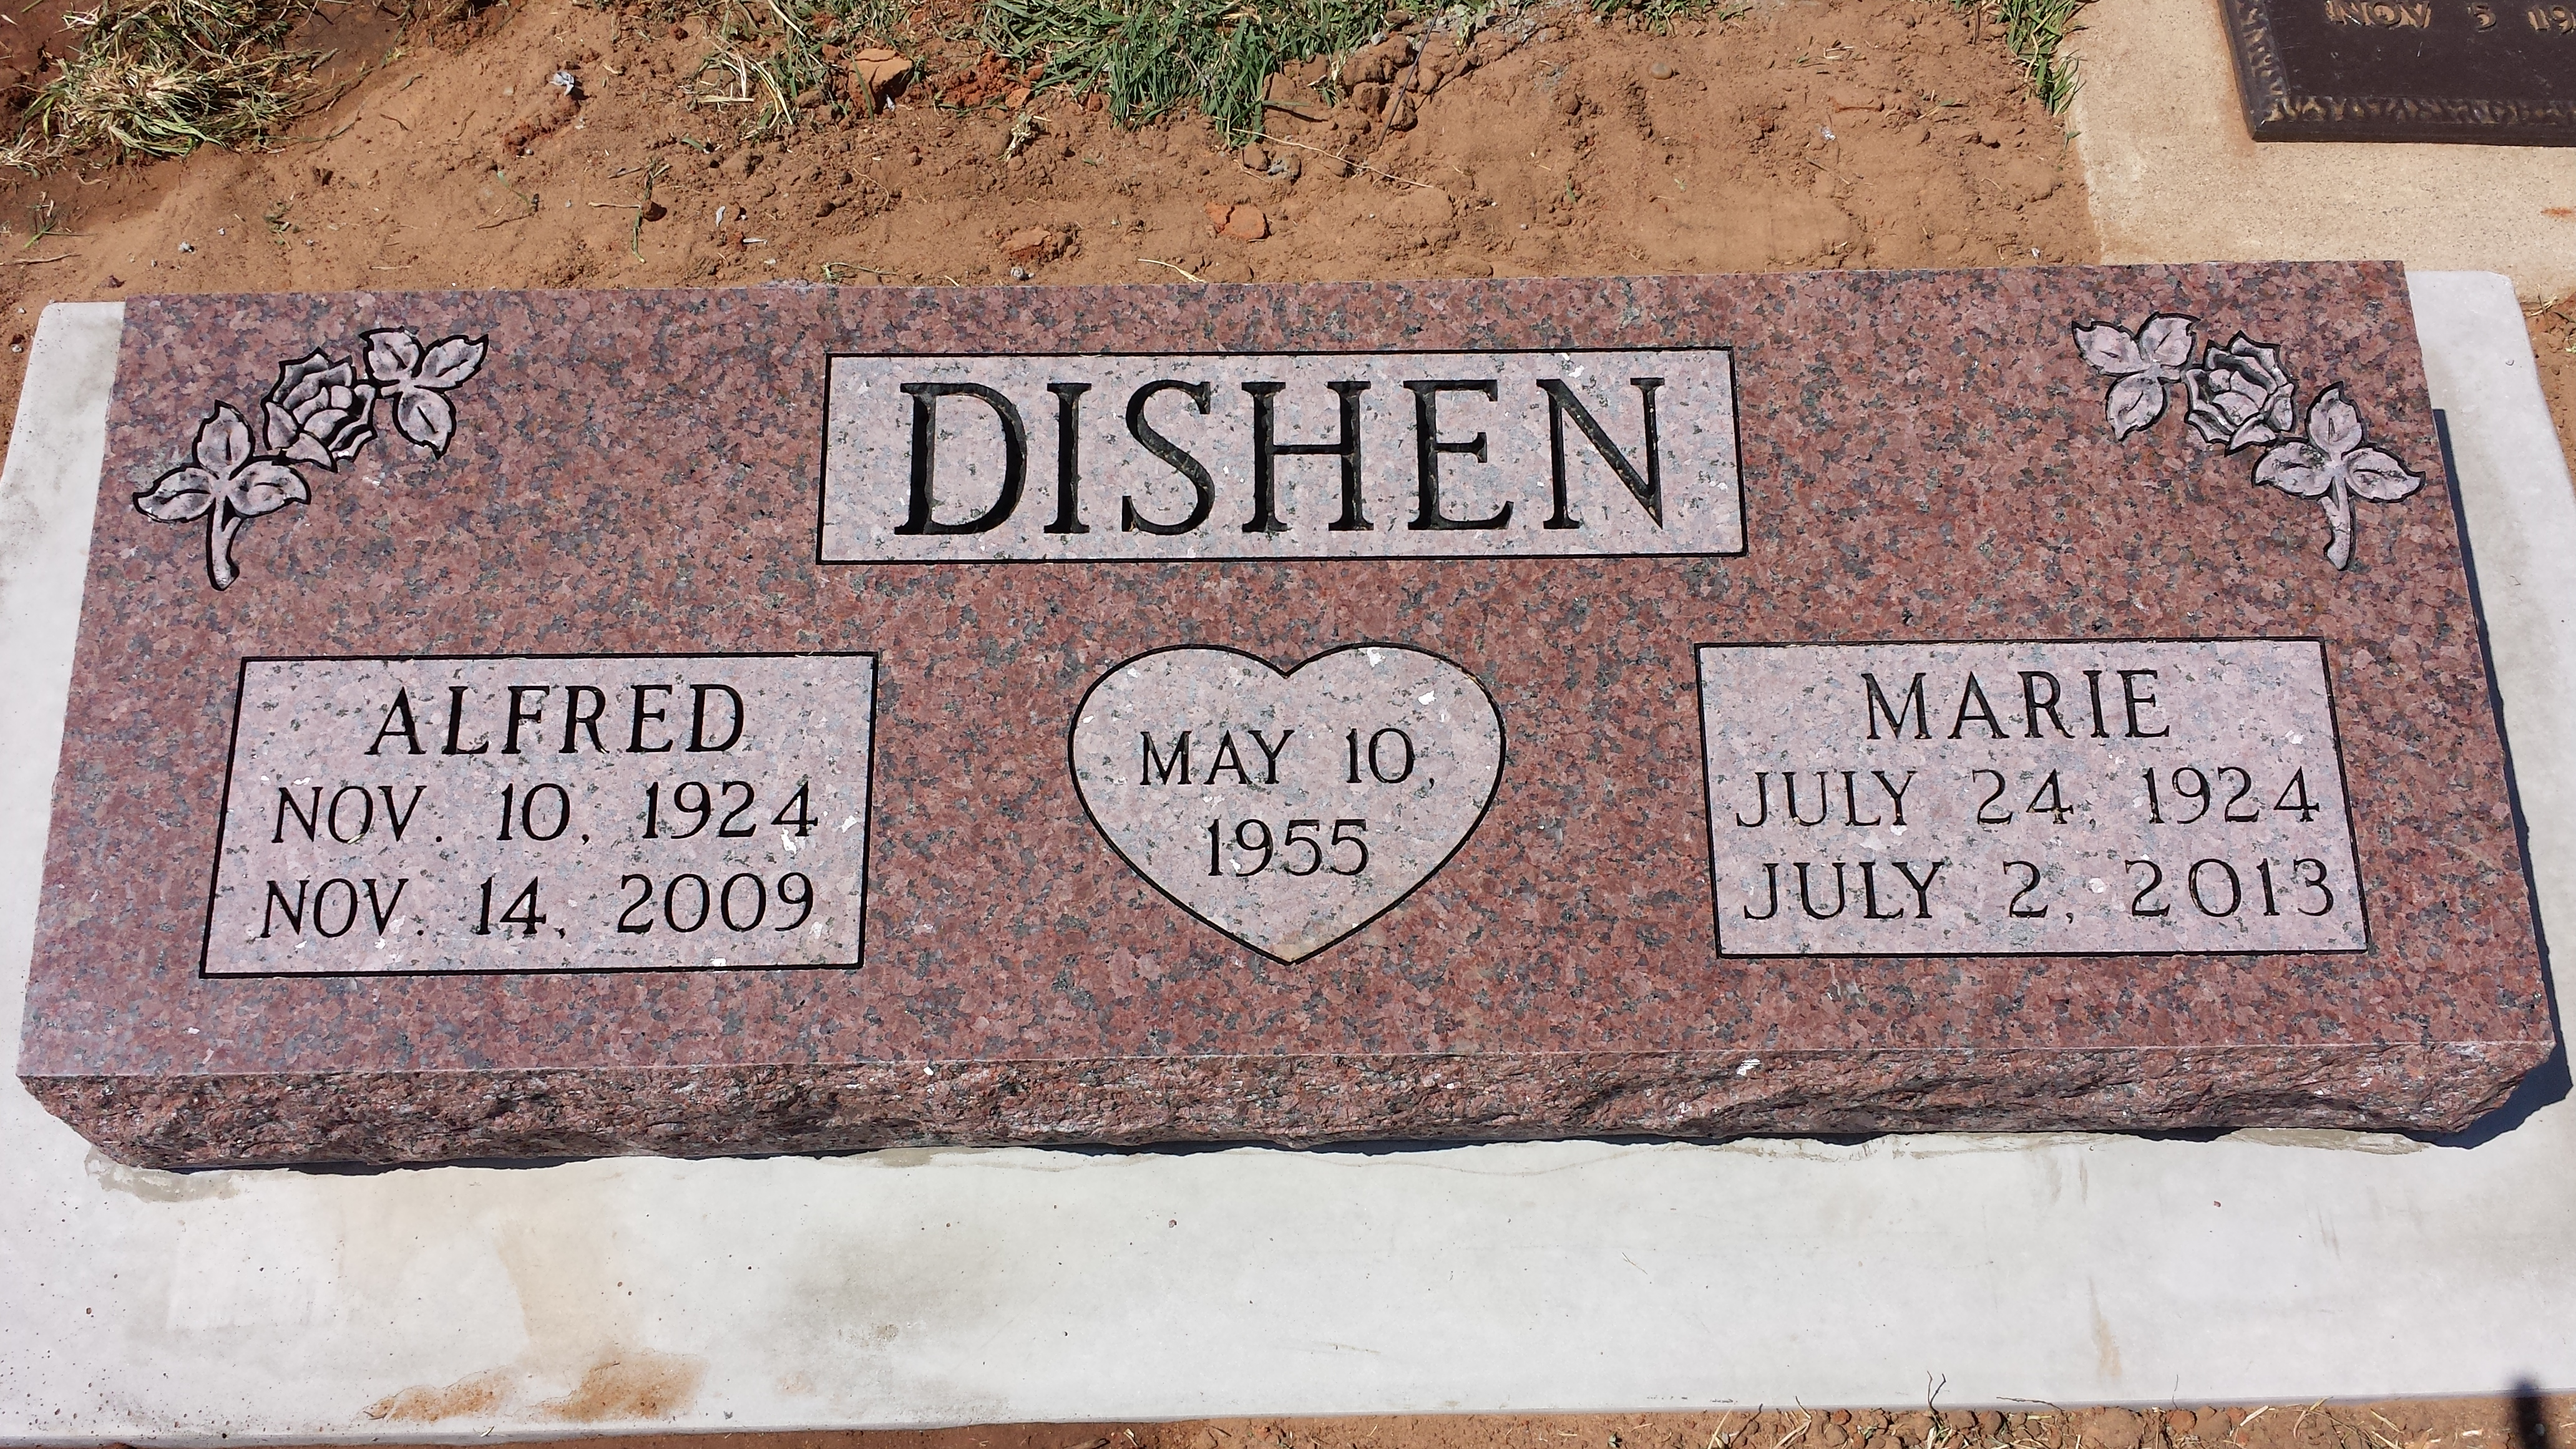 Dishen, Alfred and Marie